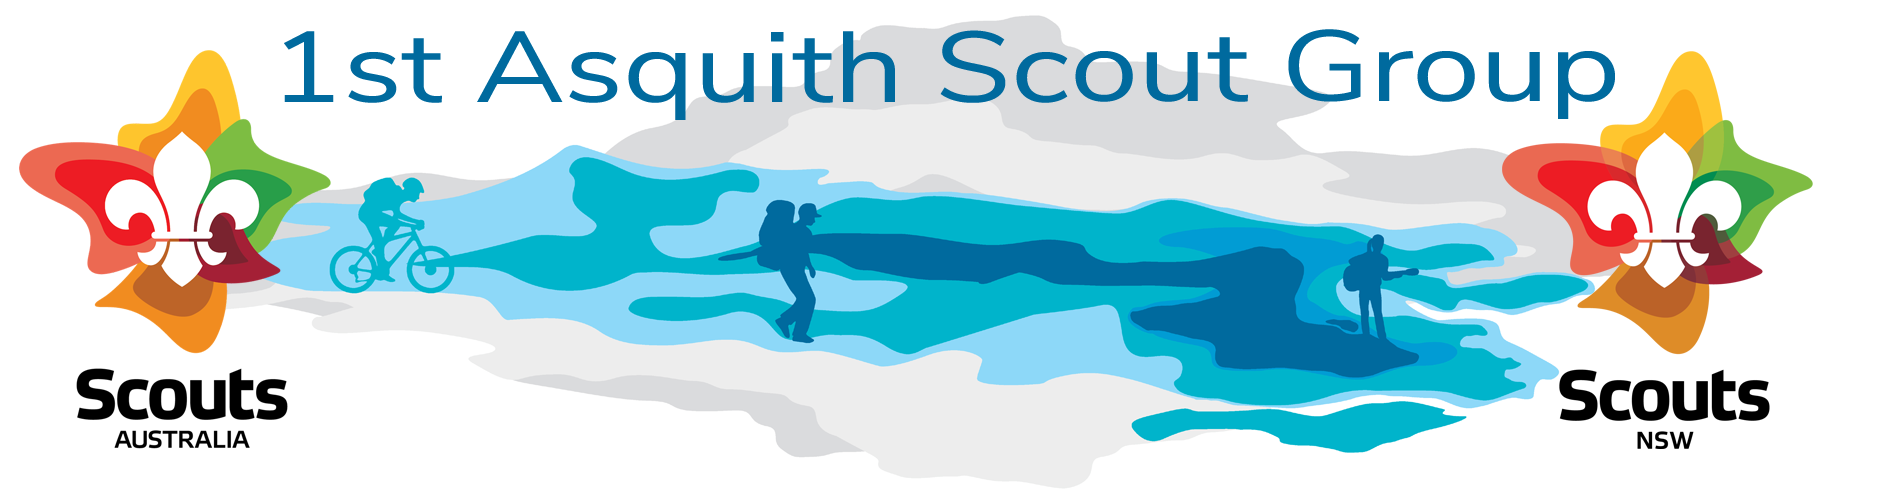 1st Asquith Scout Group